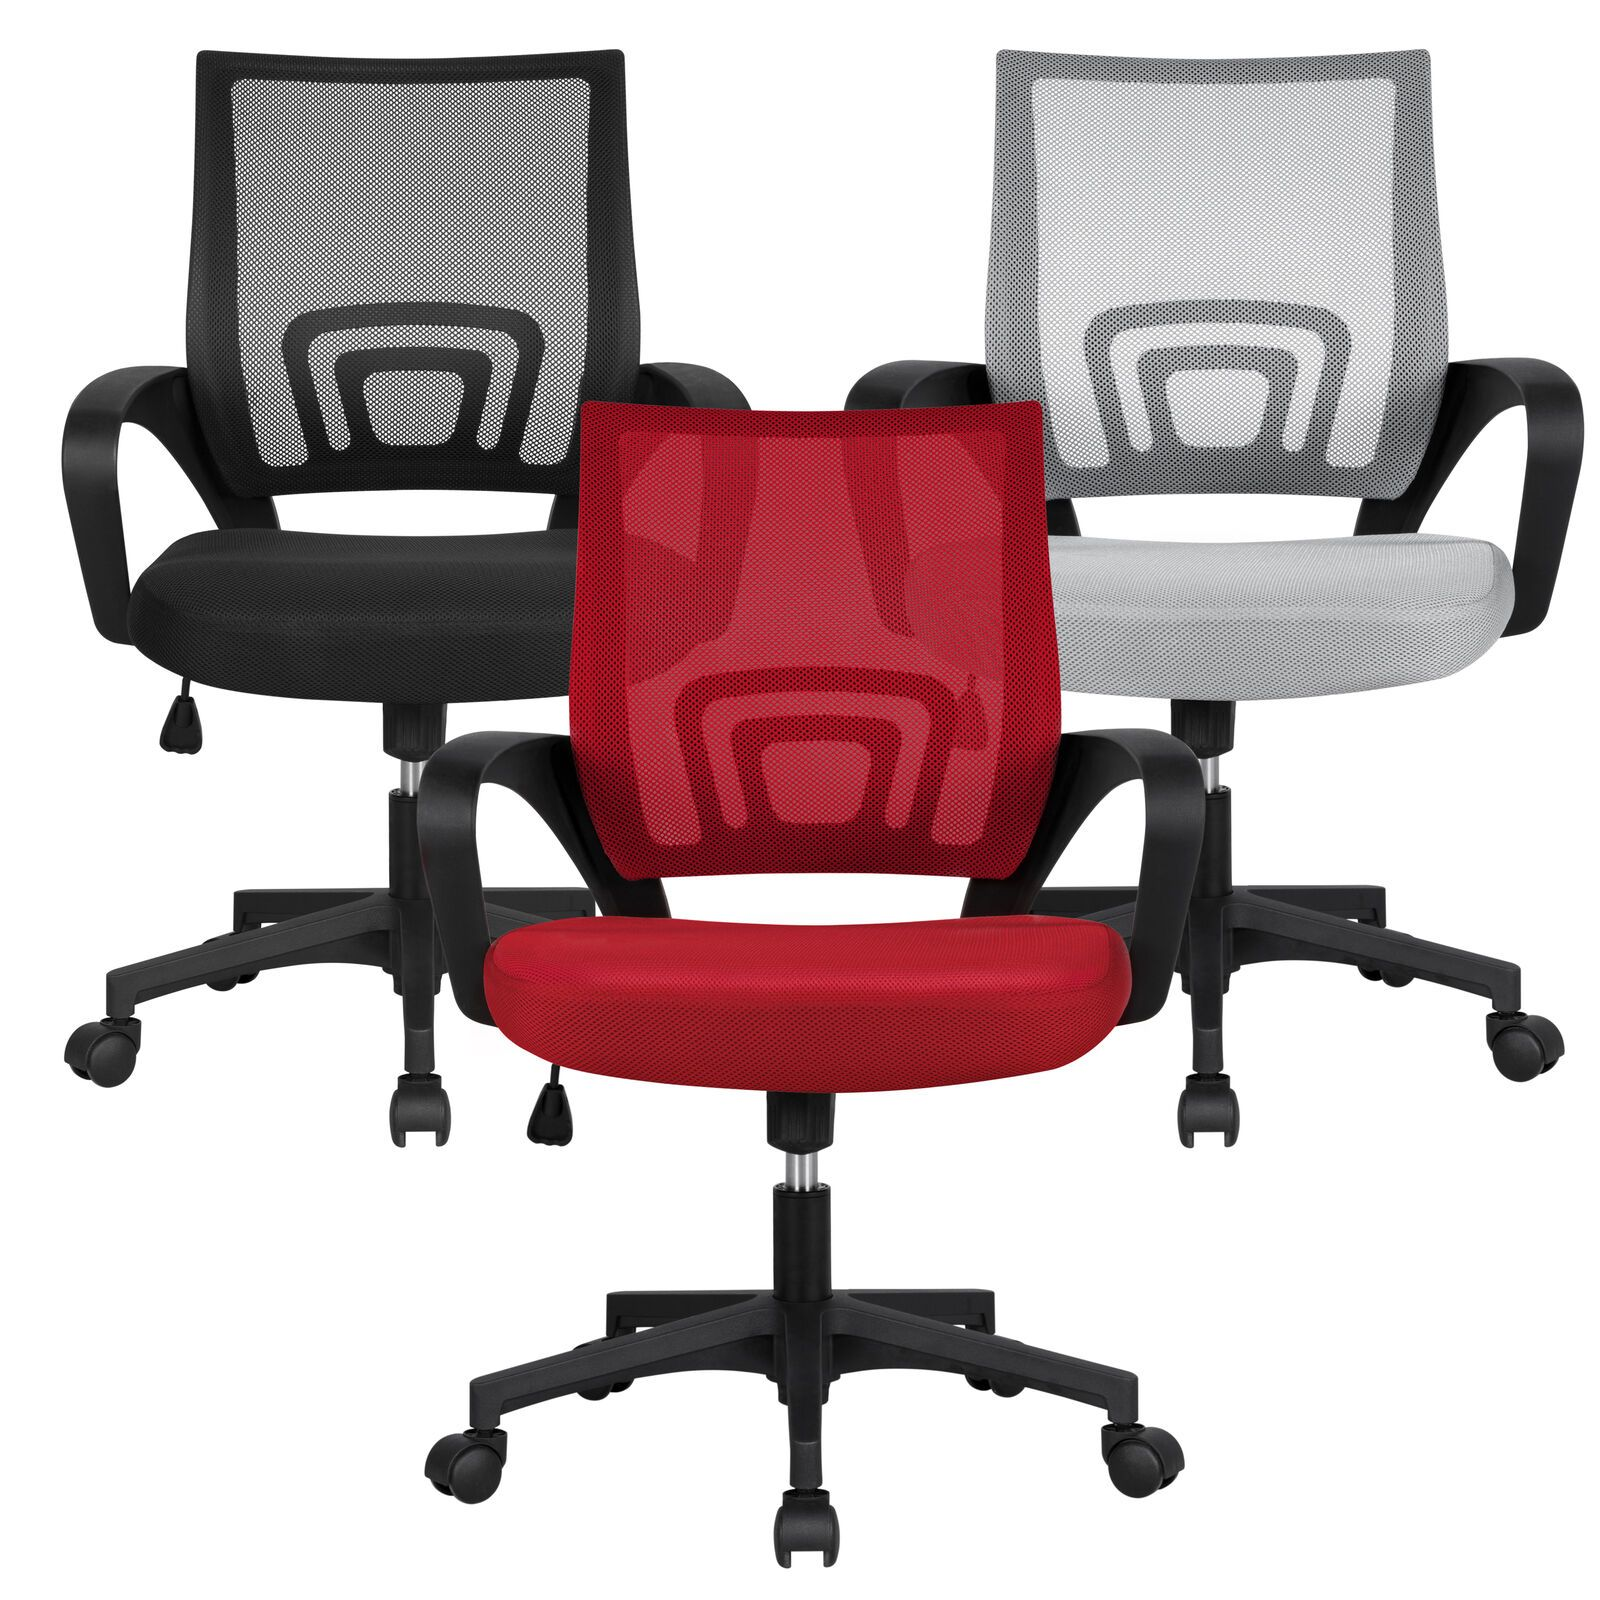 Details about Adjustable Ergonomic Mesh Swivel Computer